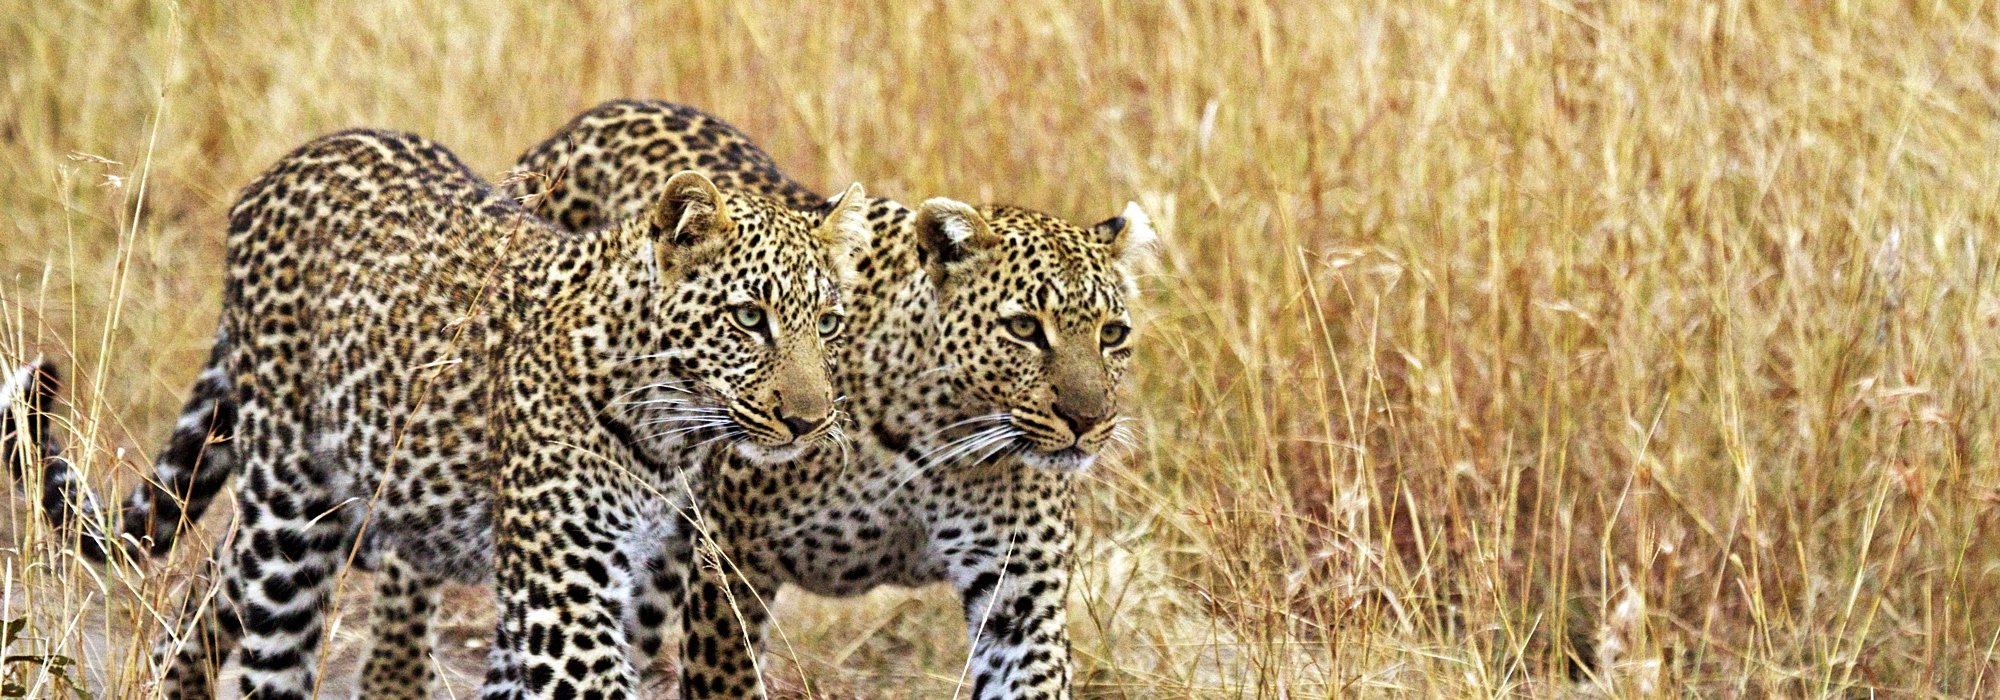 Leopards in Kenya